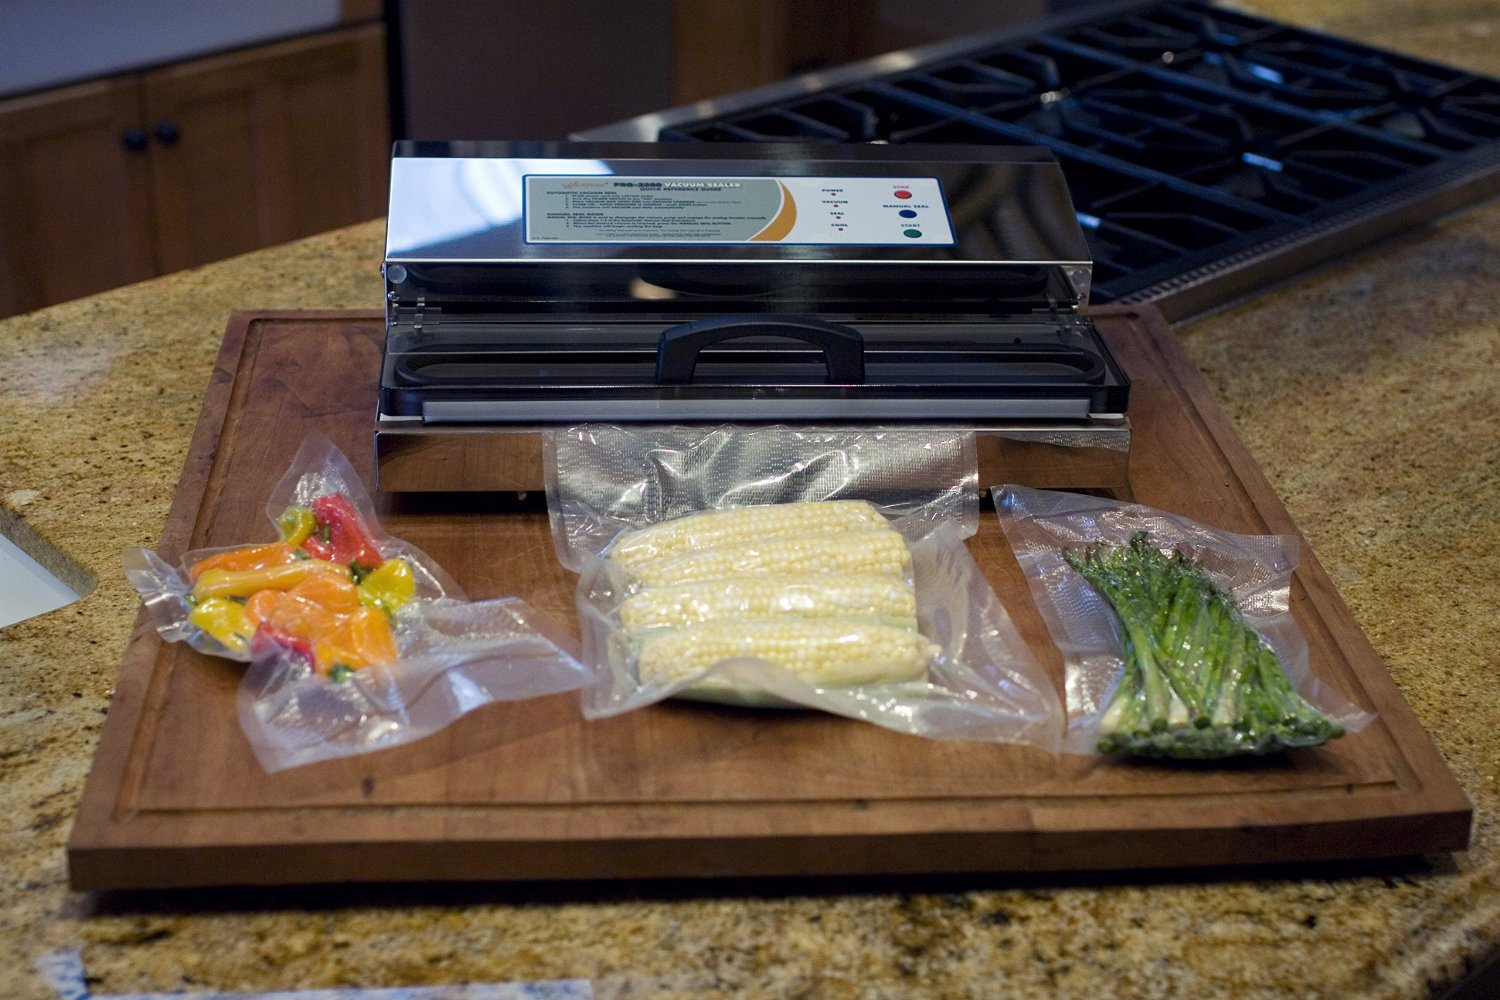 Weston Food Vacuum Sealer Pro 2300